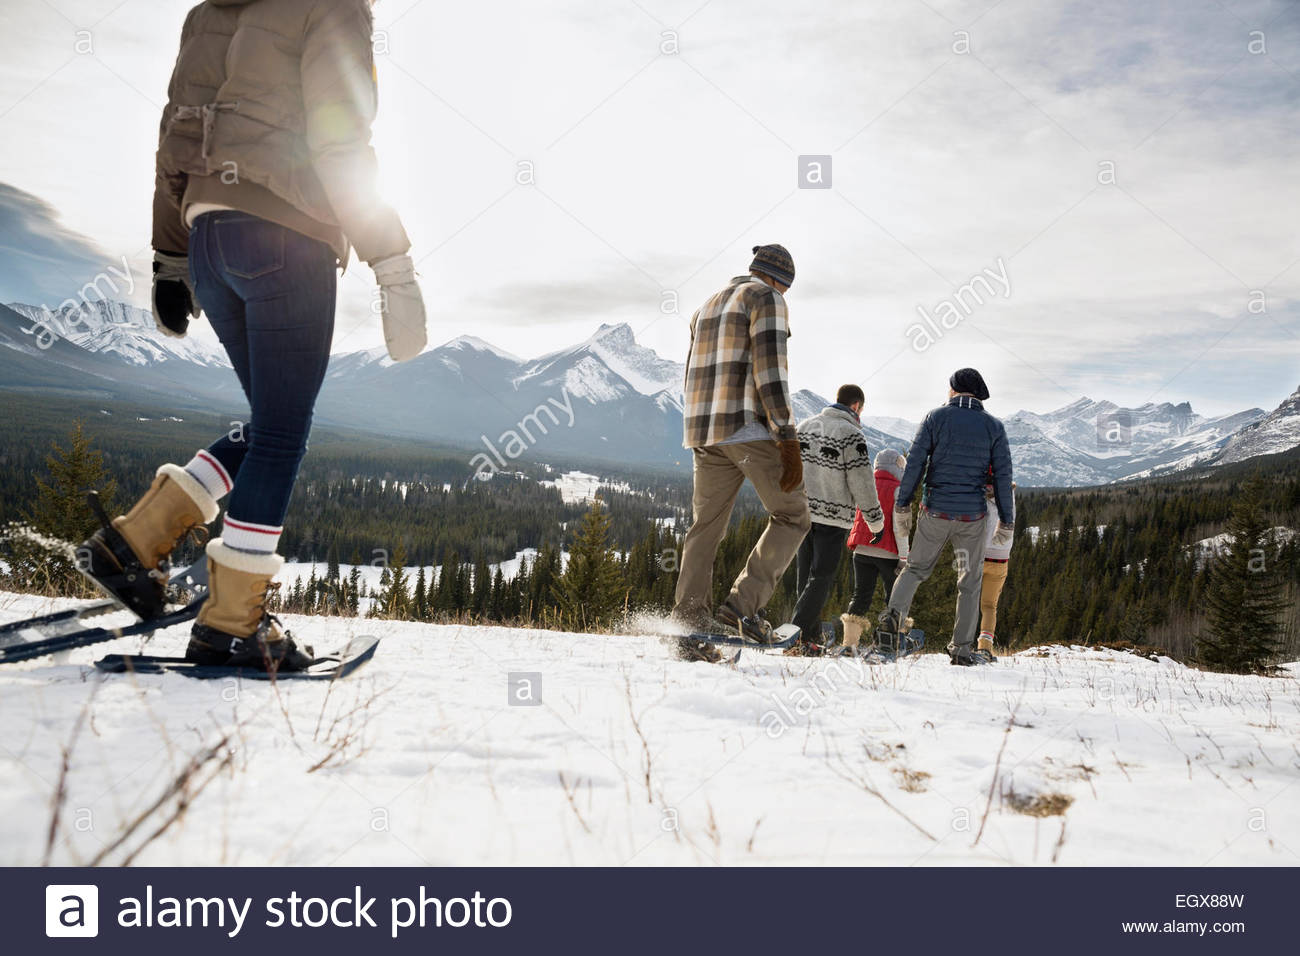 Friends snowshoeing below snowy mountains - Stock Image